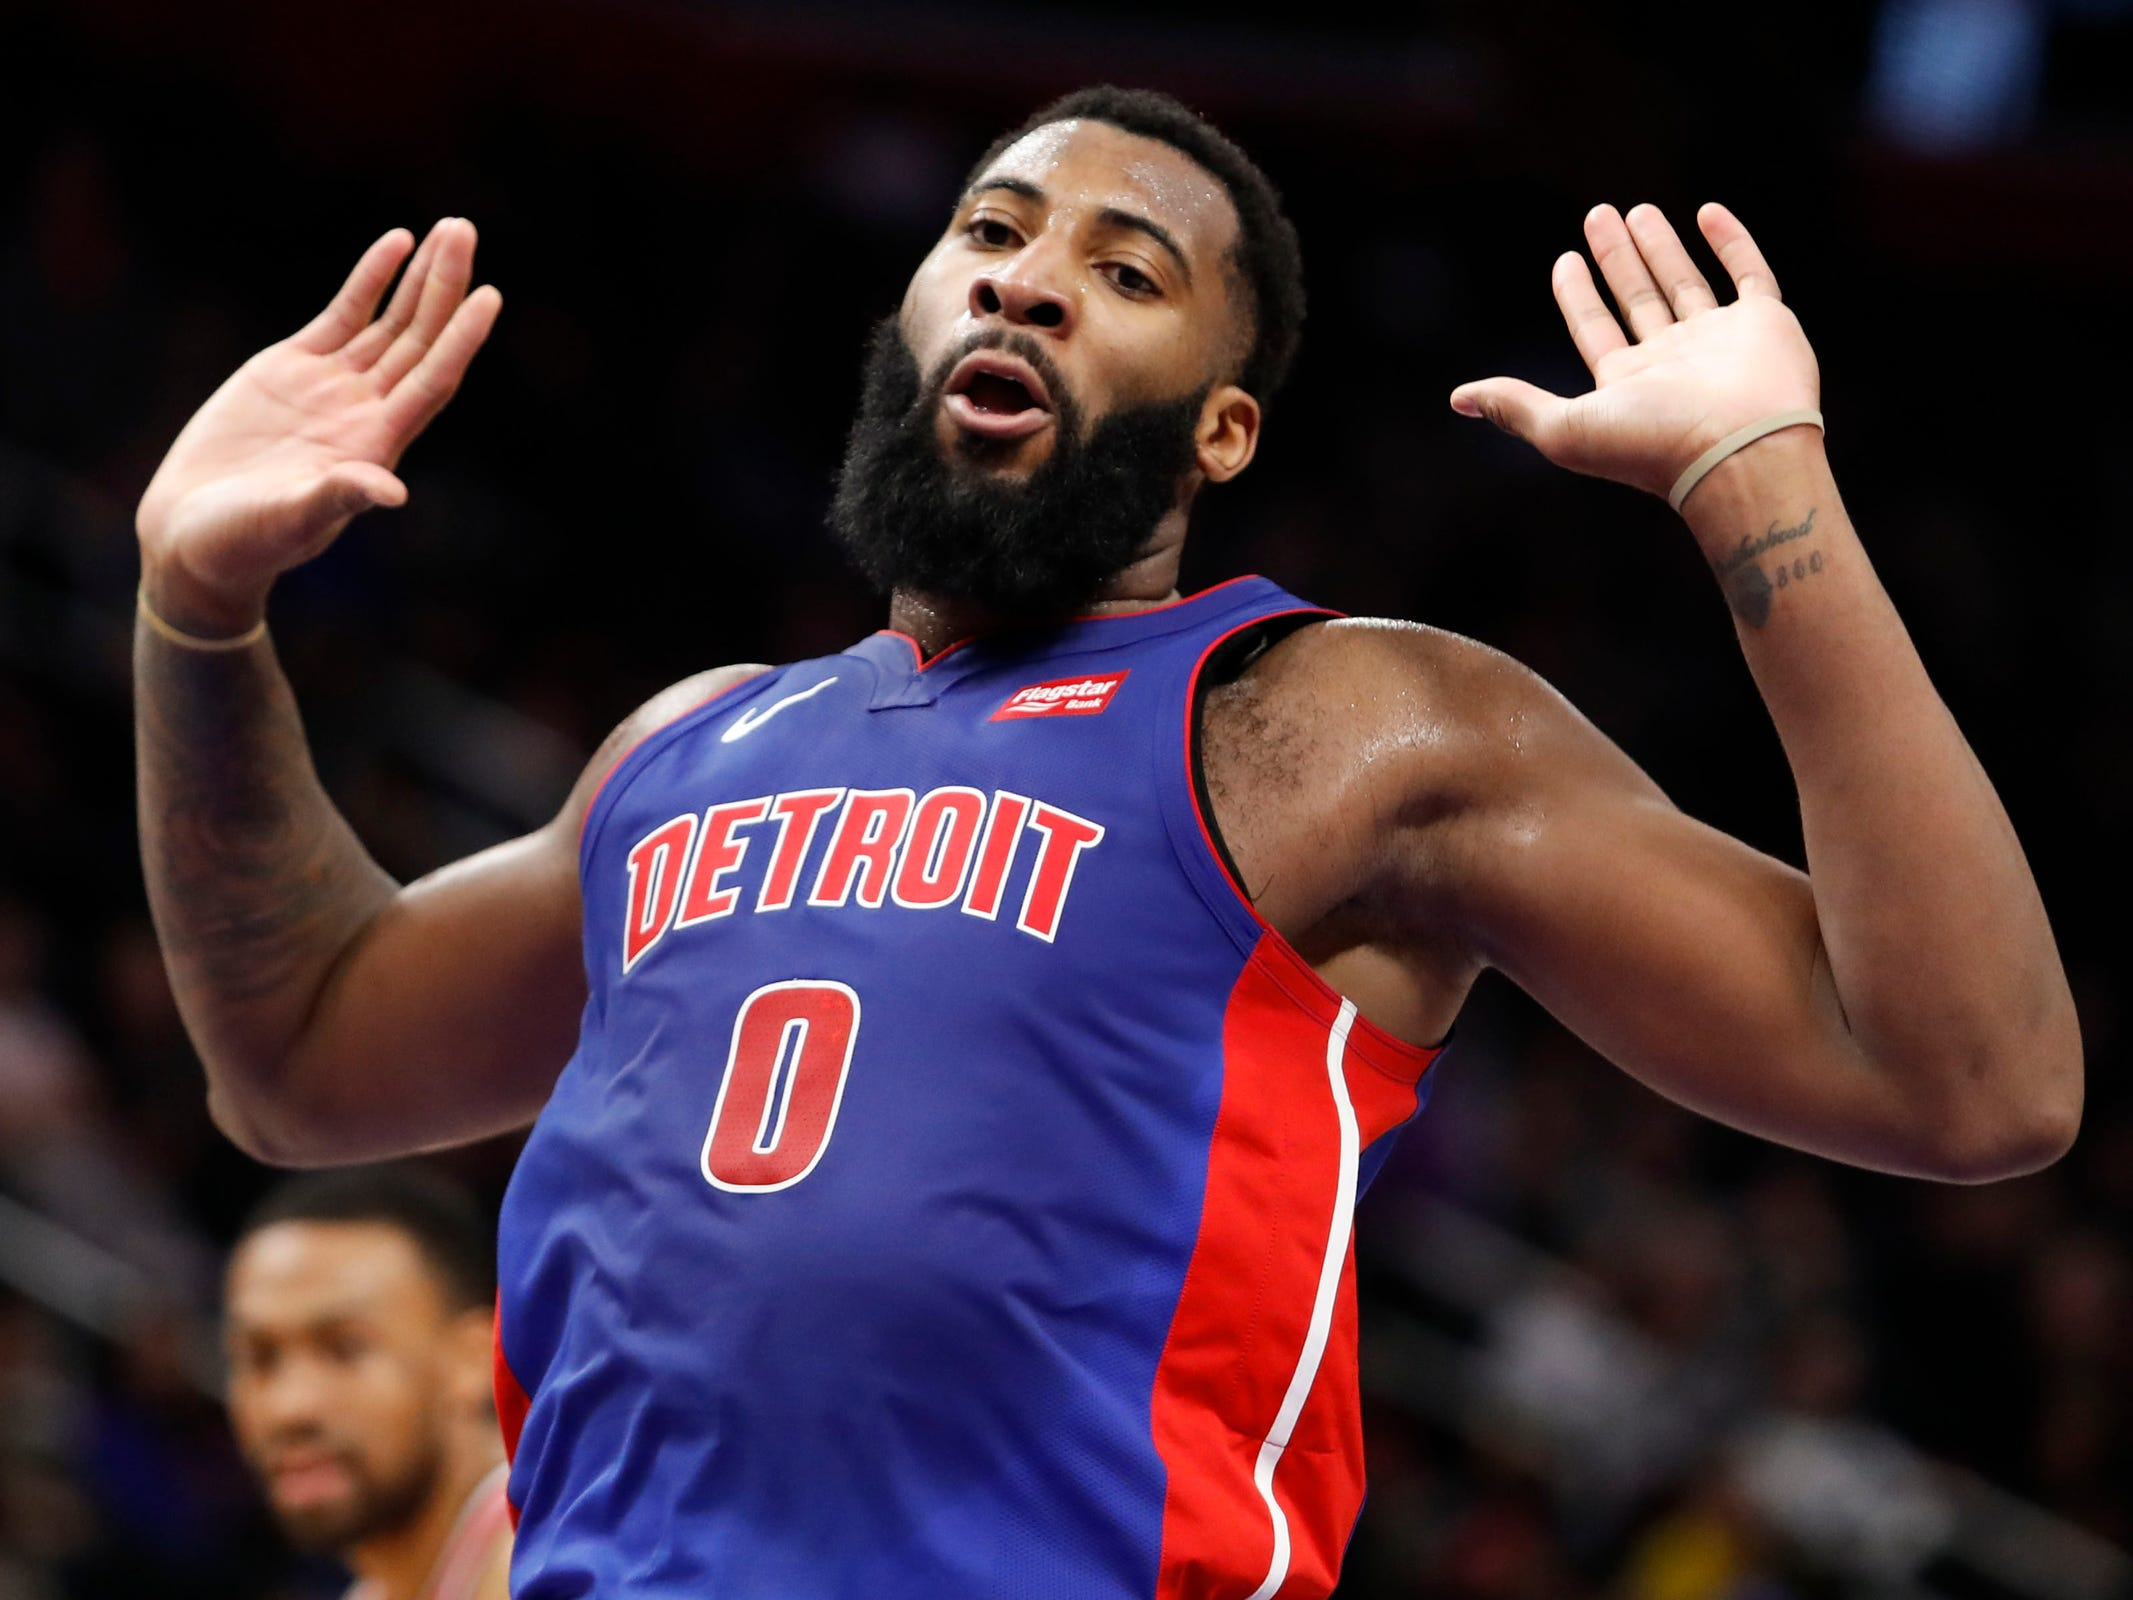 Detroit Pistons center Andre Drummond celebrates after scoring during the third quarter against the Washington Wizards at Little Caesars Arena, Feb. 11, 2019.